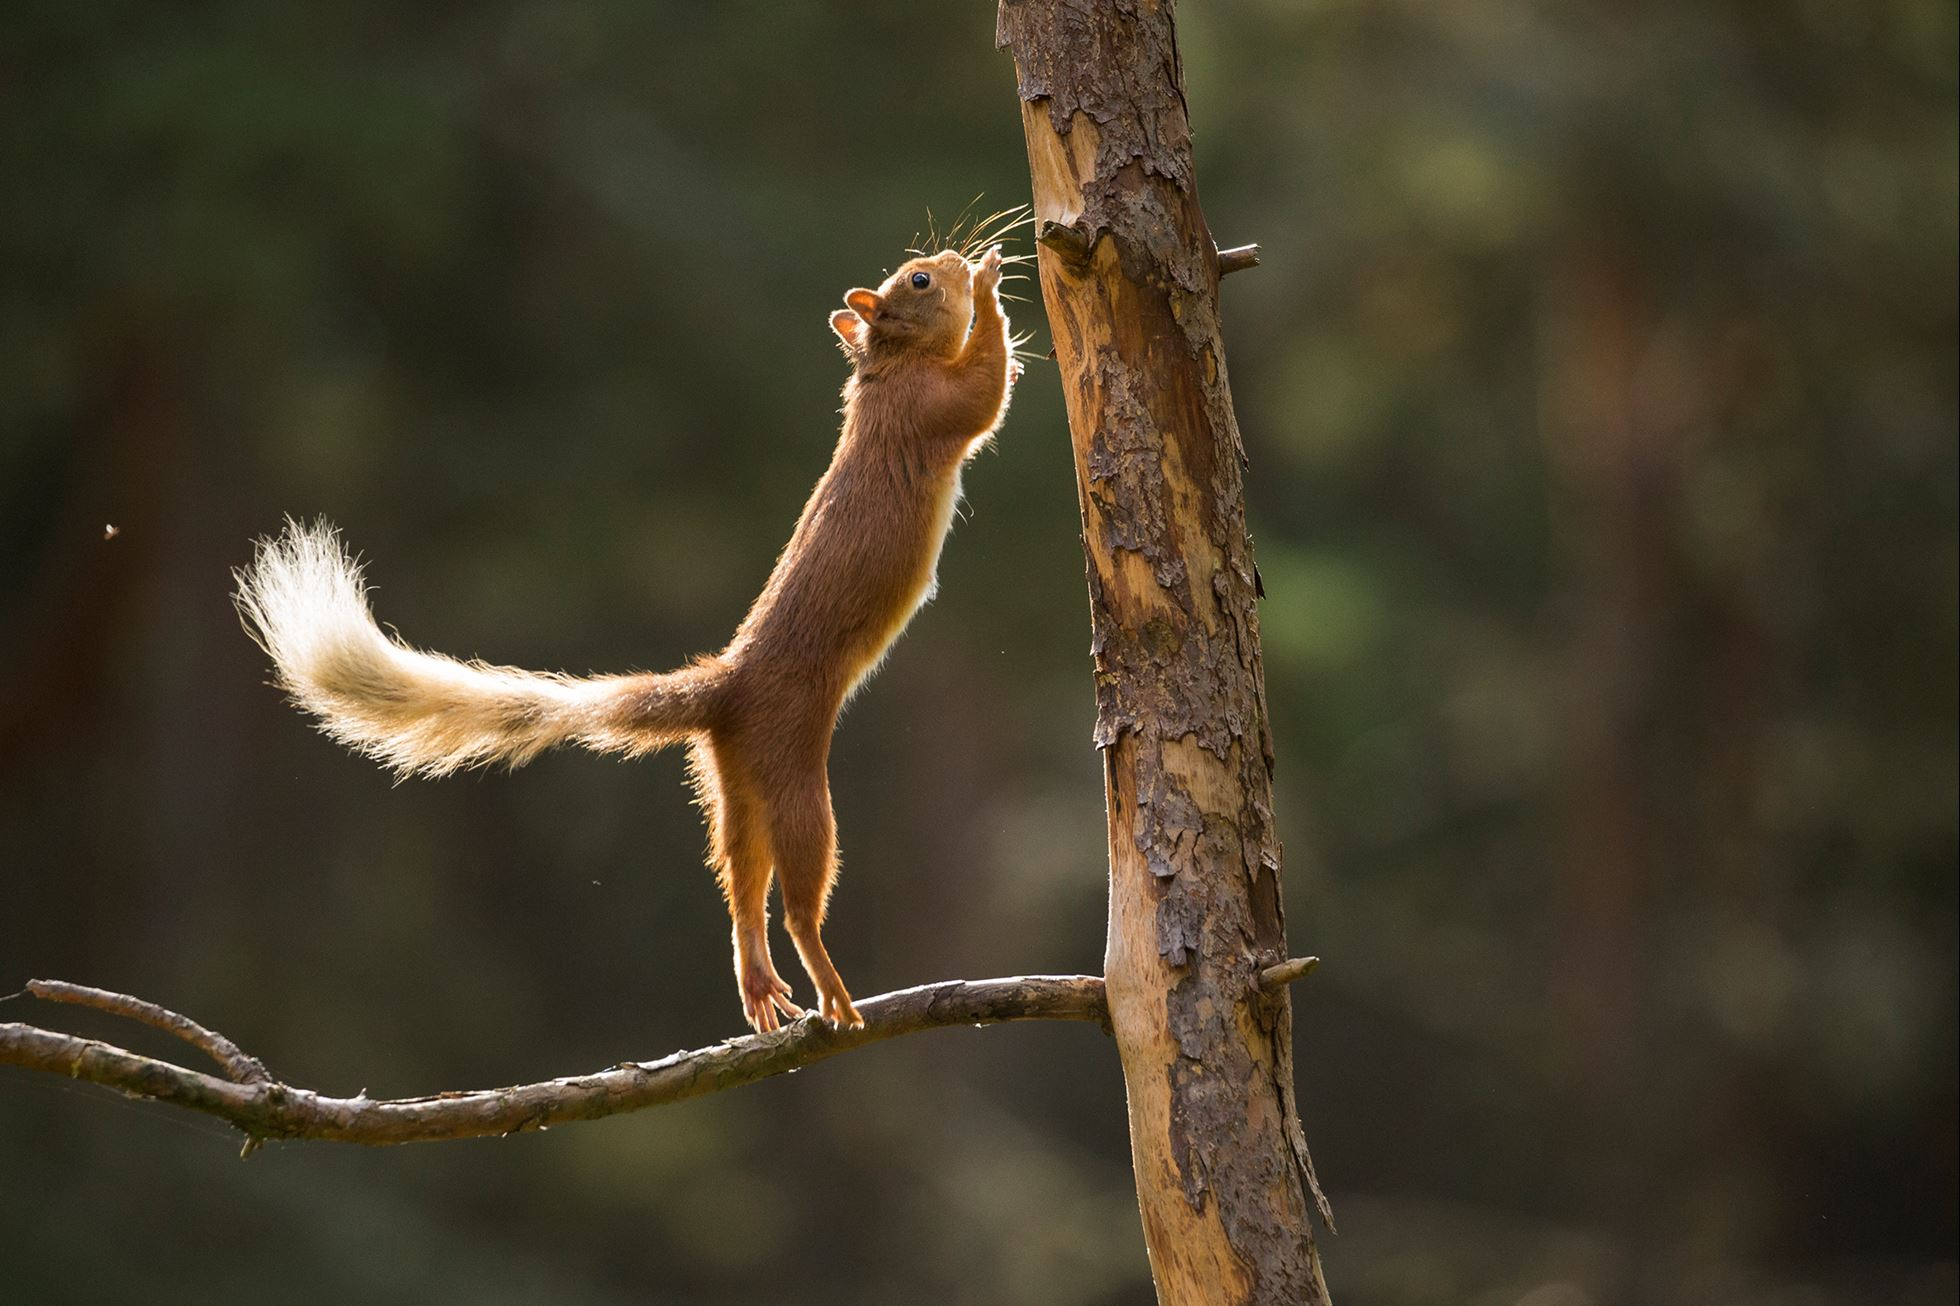 Red Squirrel (Sciurus vulgaris) leaping from pine branch